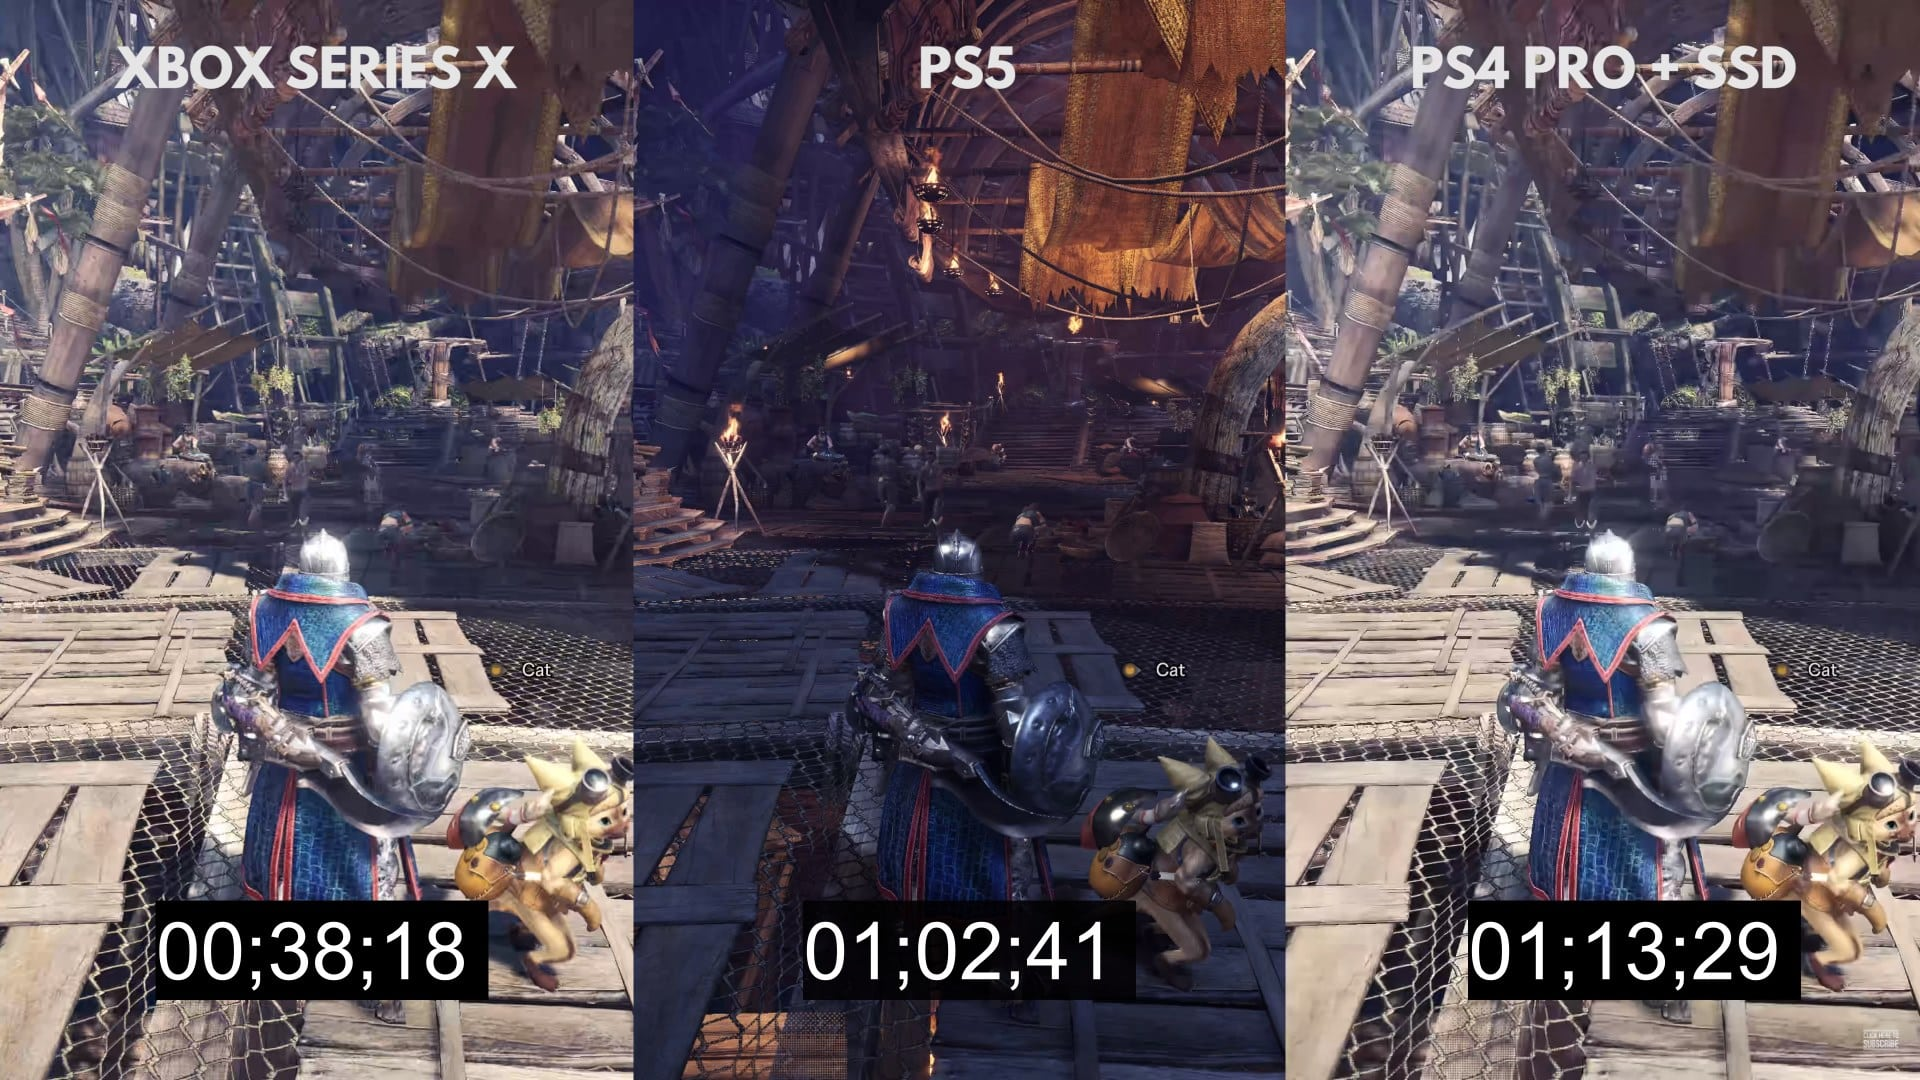 Boot up times for MHW for XBSX, PS5, and PS4